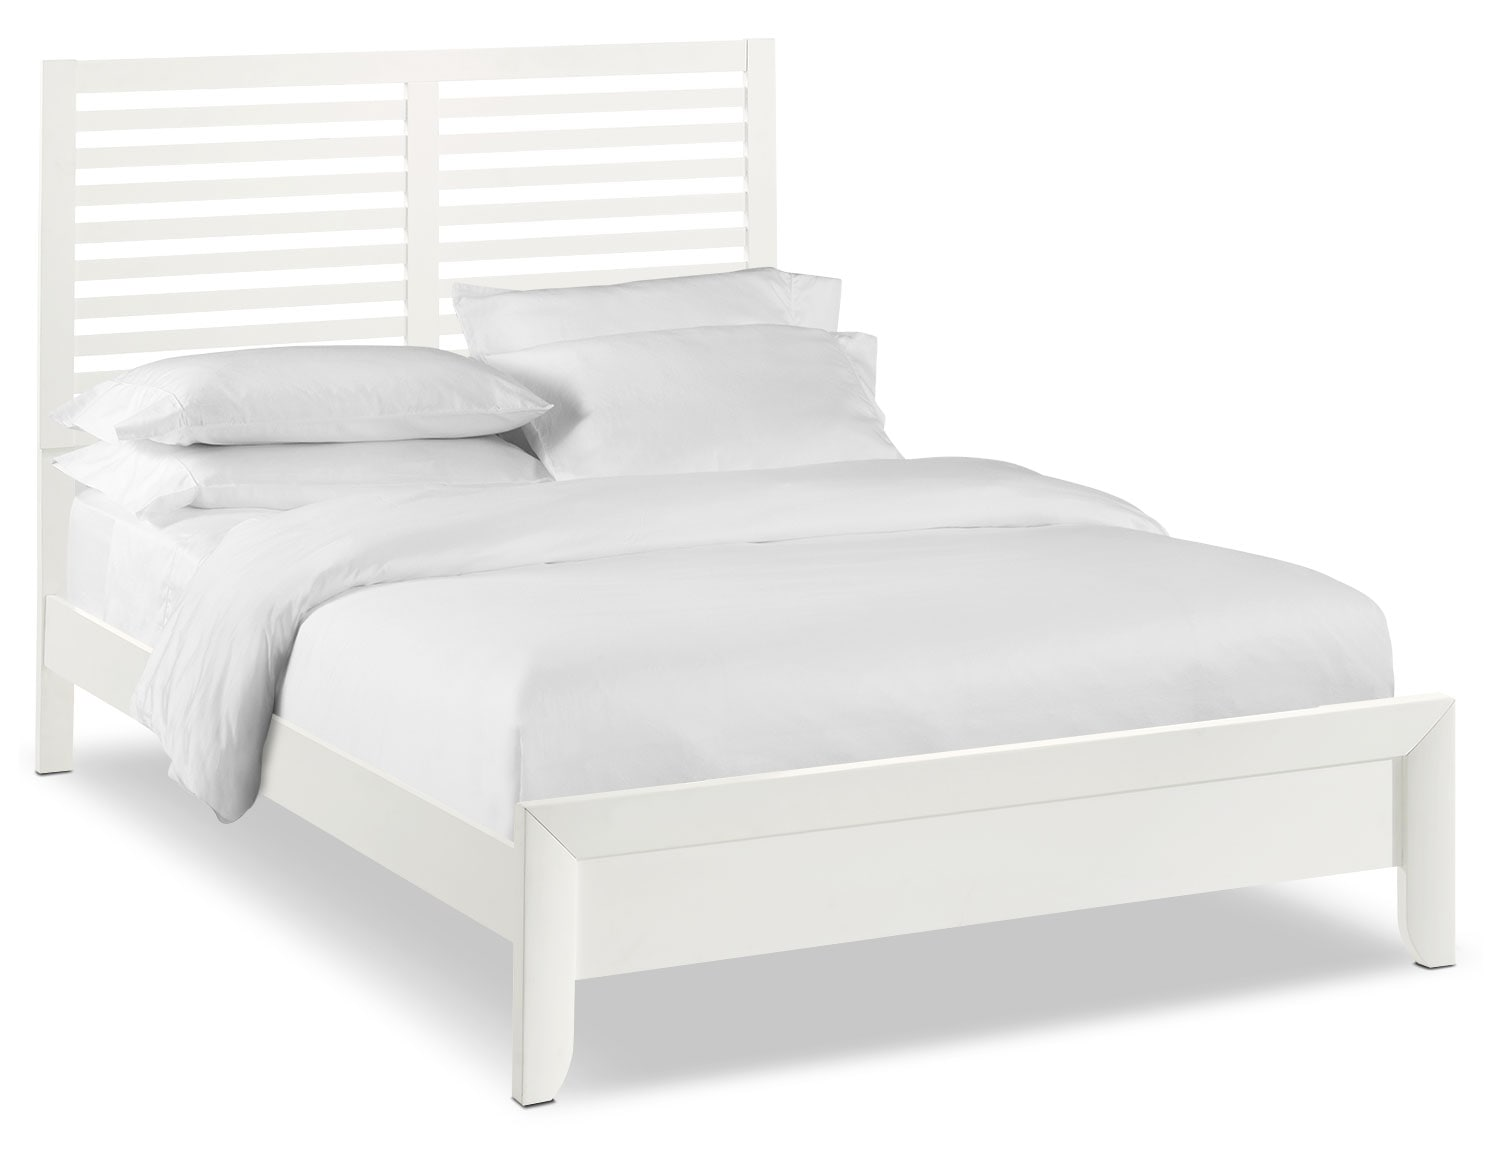 Bedroom Furniture - Braden King Slat Bed - White